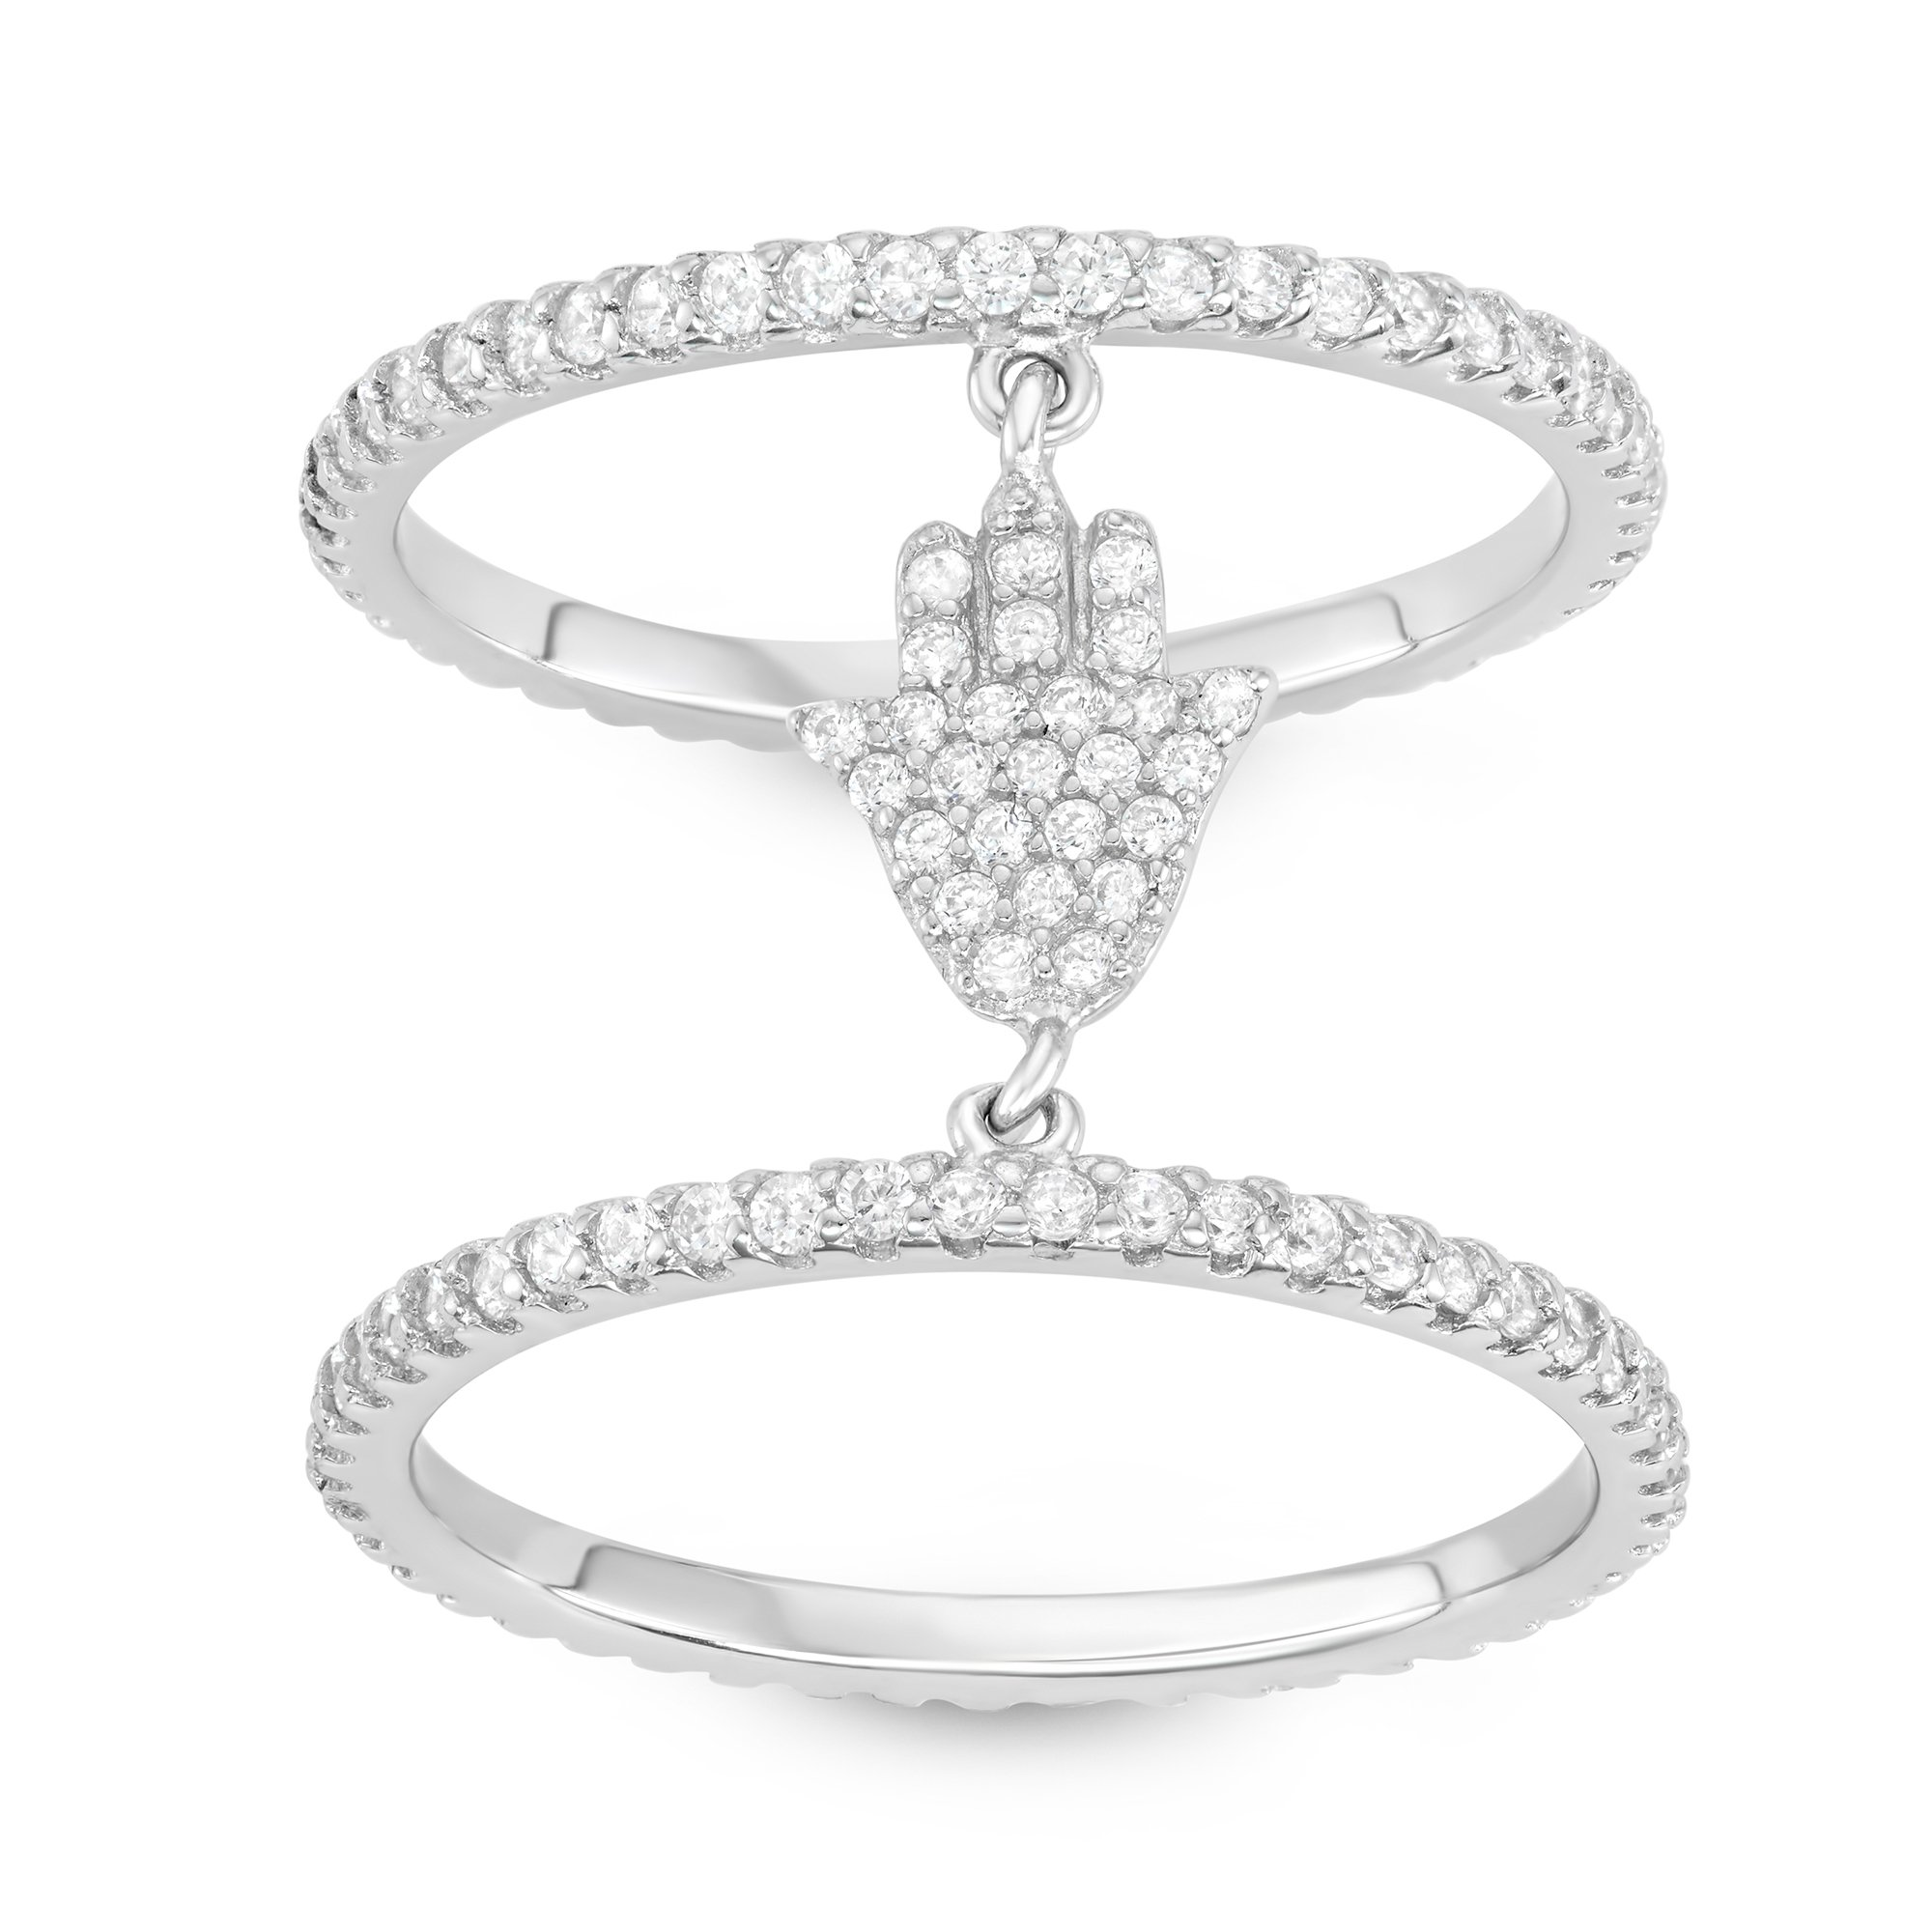 925 Sterling Silver White Inlay Cubic Zirconia Double Band Hamsa Hand Ring, Size 7 by Collection Bijoux (Image #1)